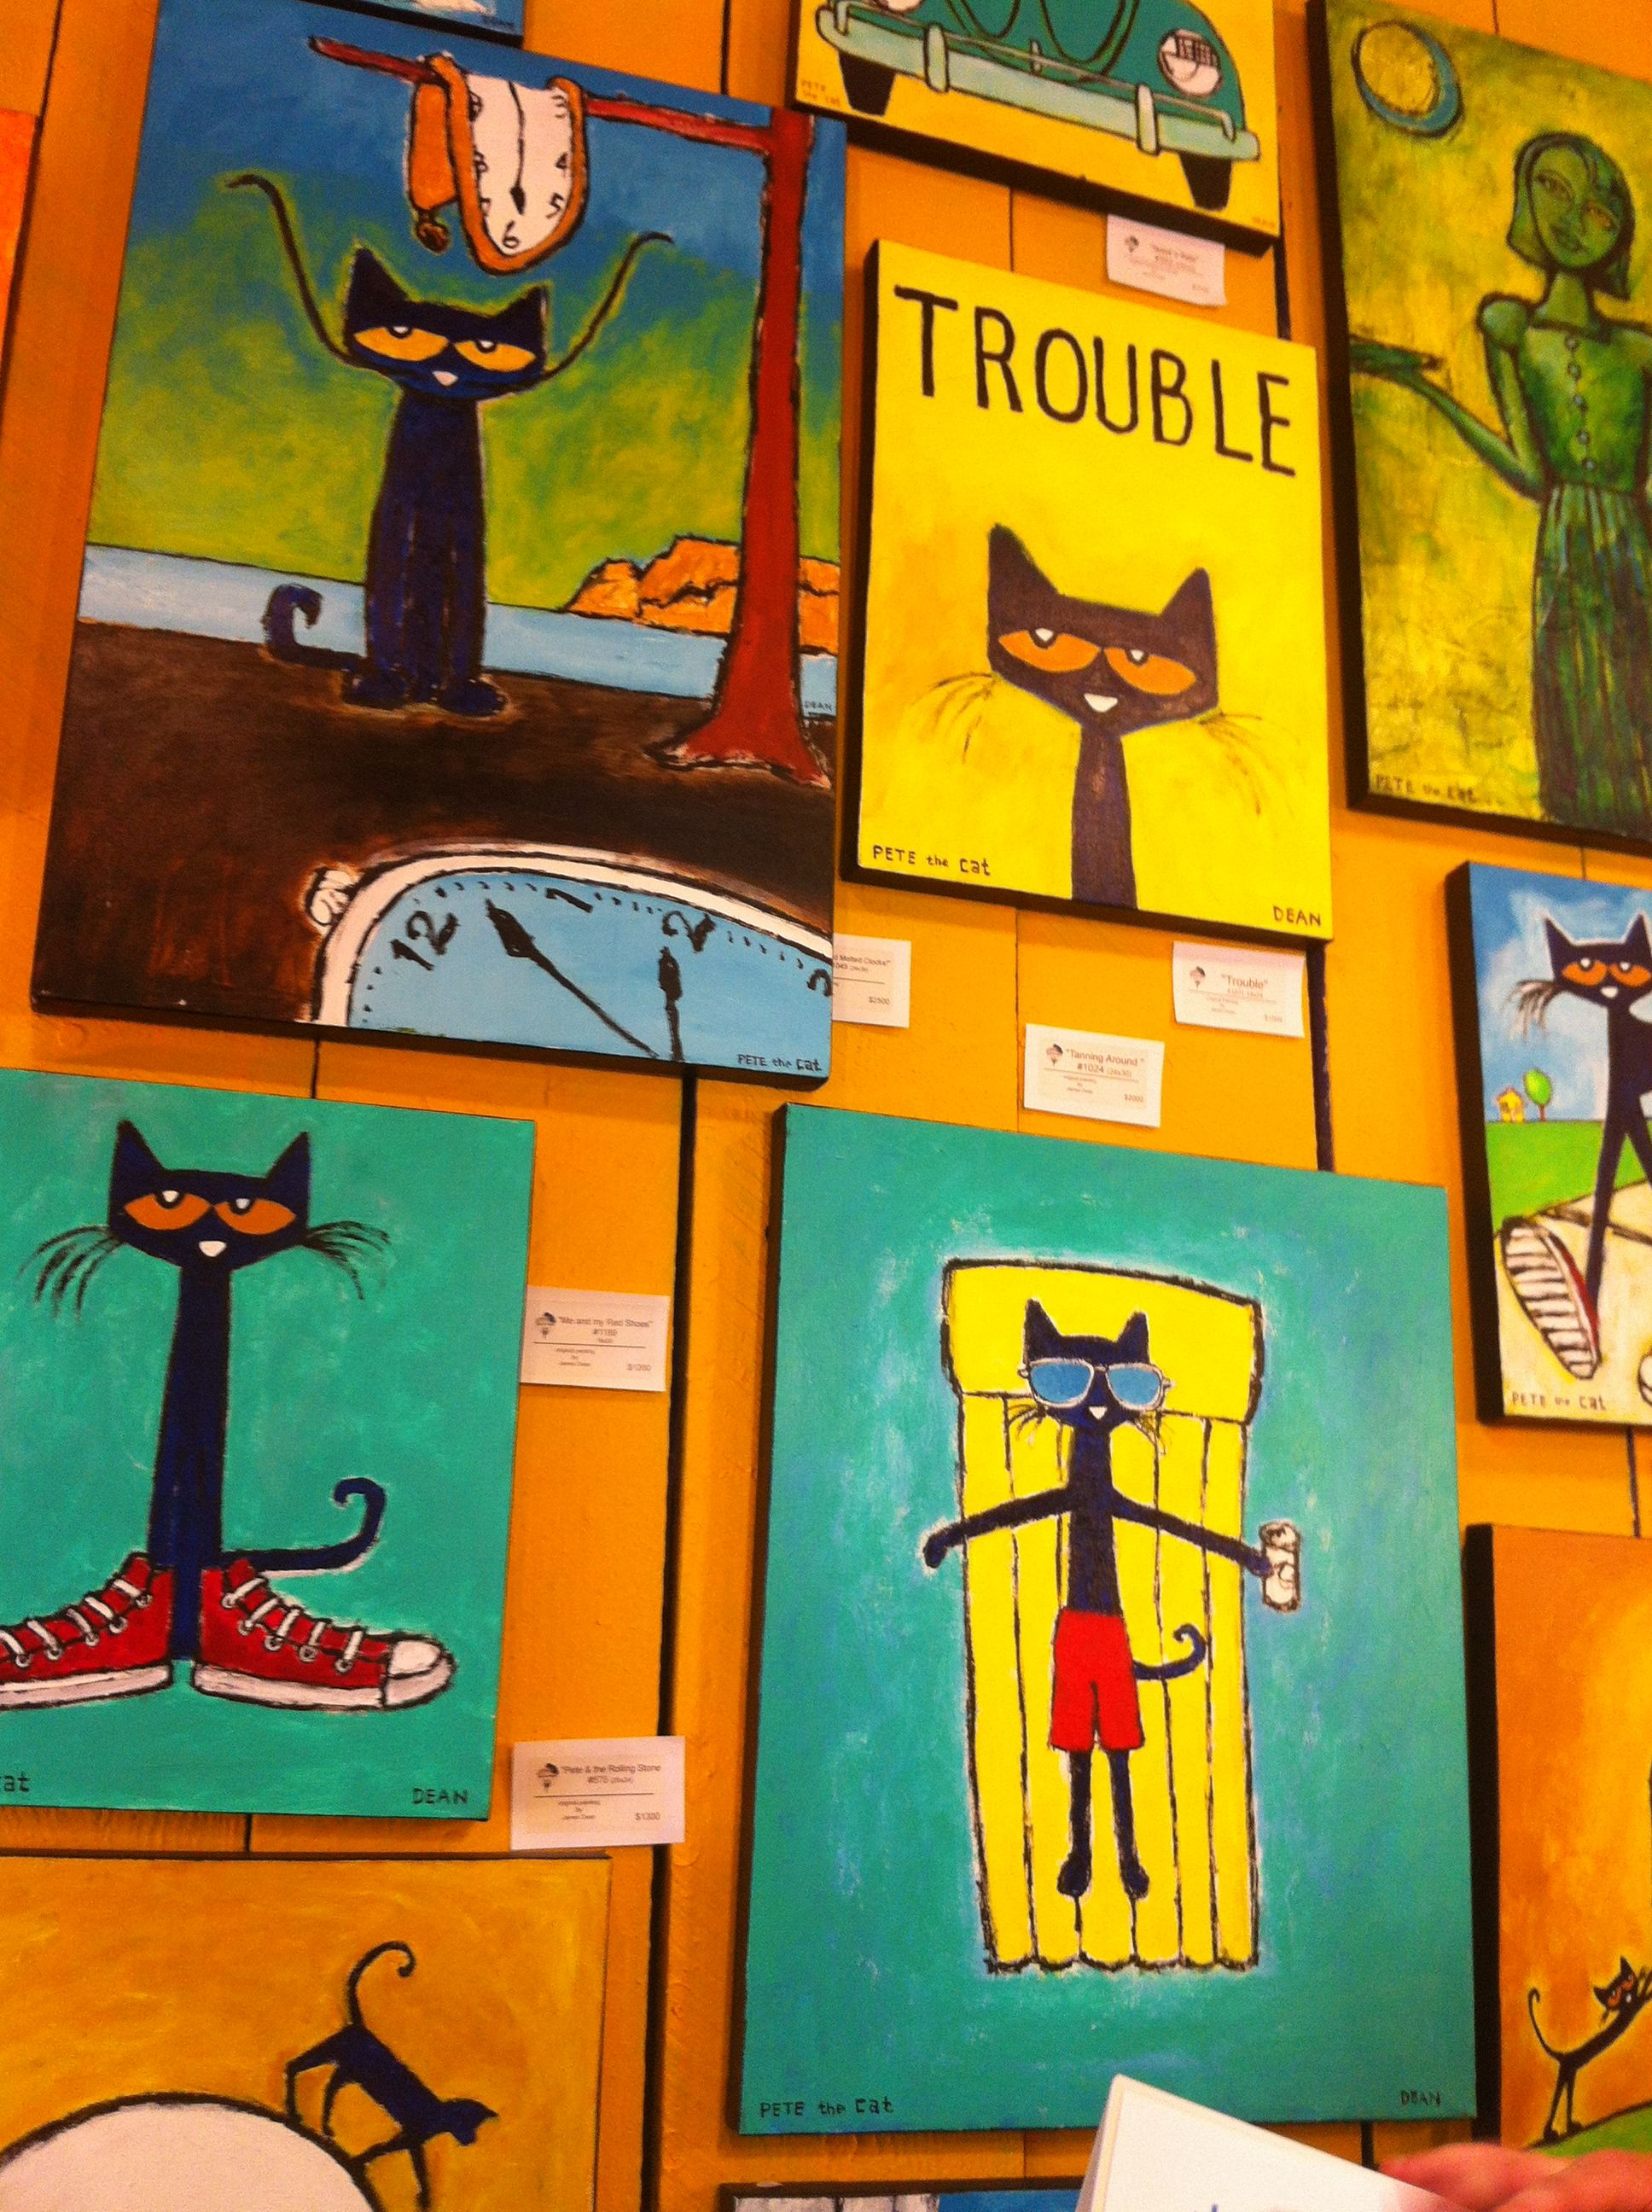 Pete The Cat At The Coolest Art Gallery In Savannah Ga At Hun Art Gallery Pete The Cat Cat Painting Cats Illustration